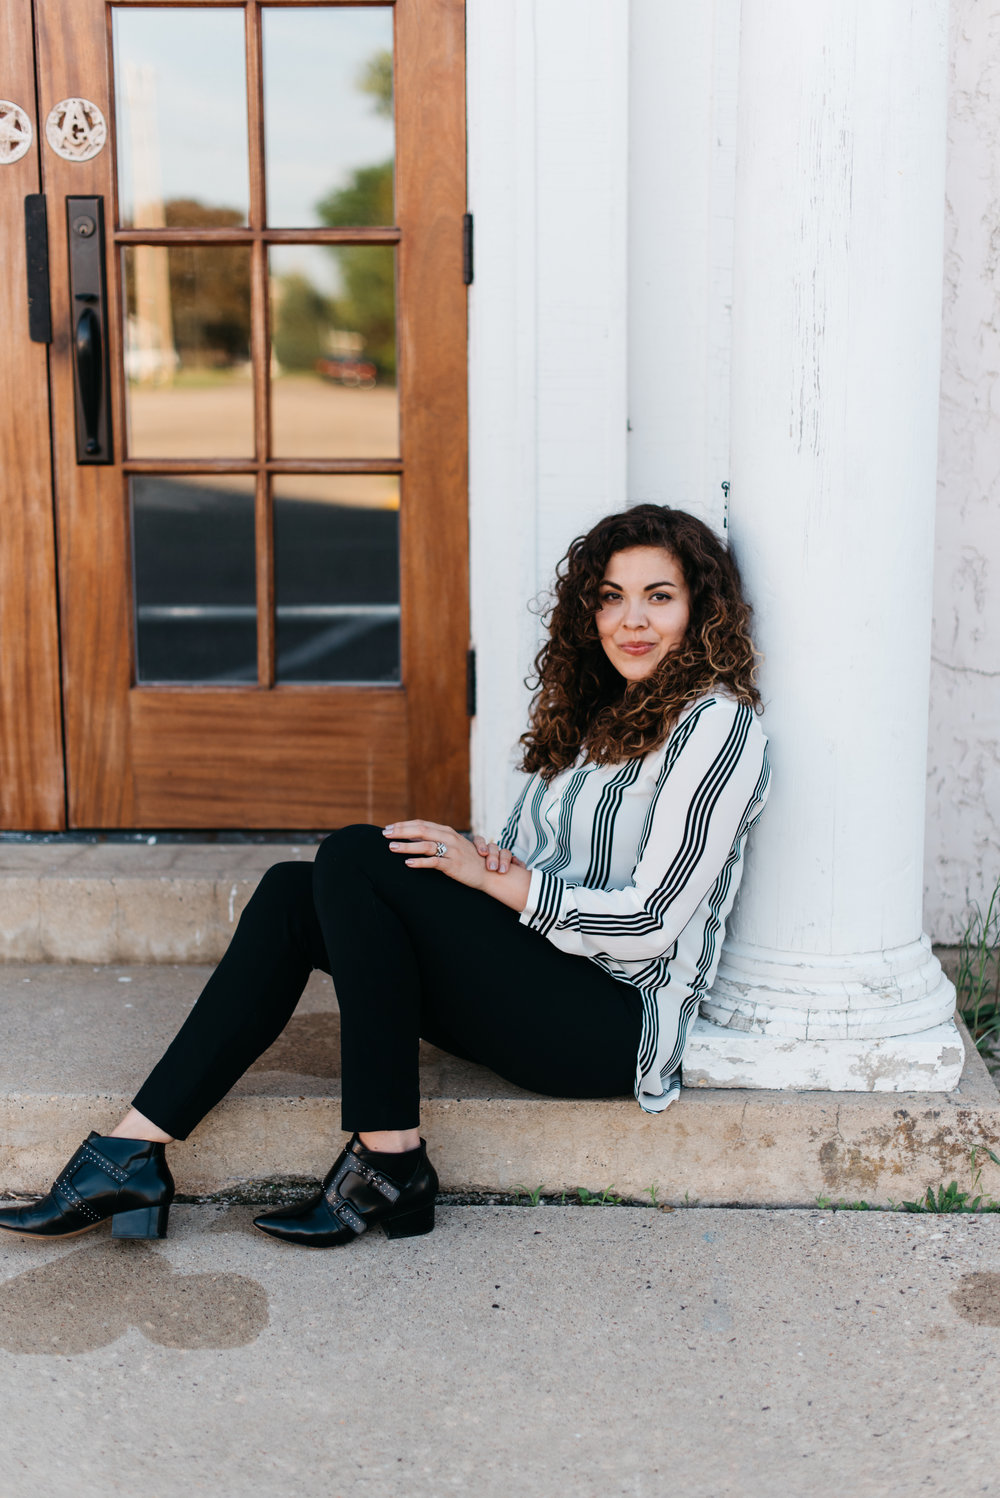 Hi there, I'm Fiorella! - I'm an event planner and designer specializing in celebrations and gatherings. I'm also the host and educator at the Planner in Training podcast where I chat with the top people in the industry and provide other event businesses with tools and training.A LITTLE ABOUT ME:I'm from Lima, Peru and growing up events were always a big part of my life. As a child my family and I attended and hosted many unforgettable parties. This has always stuck with me and it has created some of the best memories I have with my family. For this reason and many more I appreciate events on a whole other level and I'm a 250% believer that one should not have to work on their own events and well, that events don't just plan themselves.ABOUT MY WORK:I'm located in Wisconsin Dells and we (my team and I) serve our local surrounding areas, Madison, and Destinations. Our in-house services include Planning, Coordination, Flowers, and Rentals. We work closely to help plan, conceptualize and produce annual or once in a life-time events. From beautiful weddings, to annual community events, to large corporate meetings we have been a premier source for special events in our area.Because of my background in the marketing and hospitality industry I have also had the pleasure of helping other small businesses with branding and business strategy, helping them start, grow and change their the way they do business.For more information scroll up to the top.Talk to you soon, Fiorellaphoto cred: Tara Draper PhotographyS